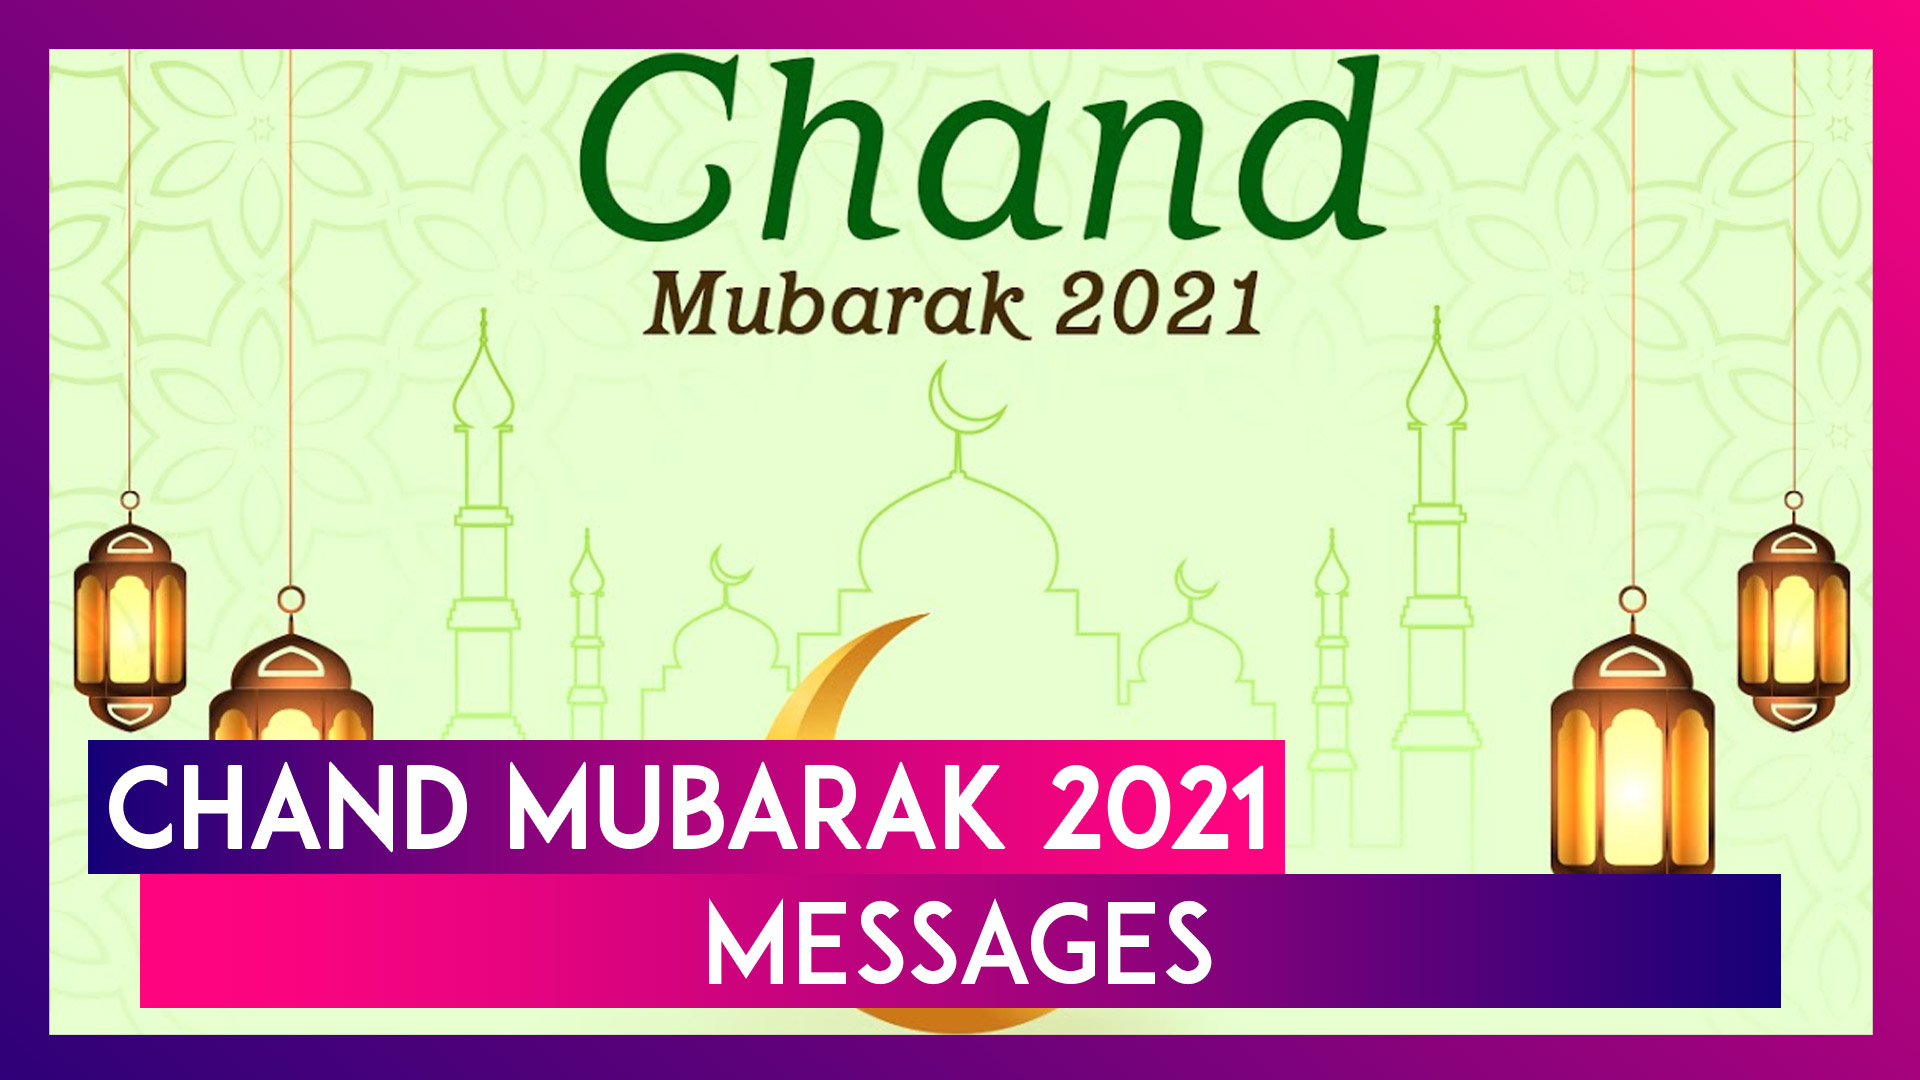 Chand Mubarak 2021 Messages: Celebrate the End of Ramzan With Eid al-Fitr Wishes & Greetings